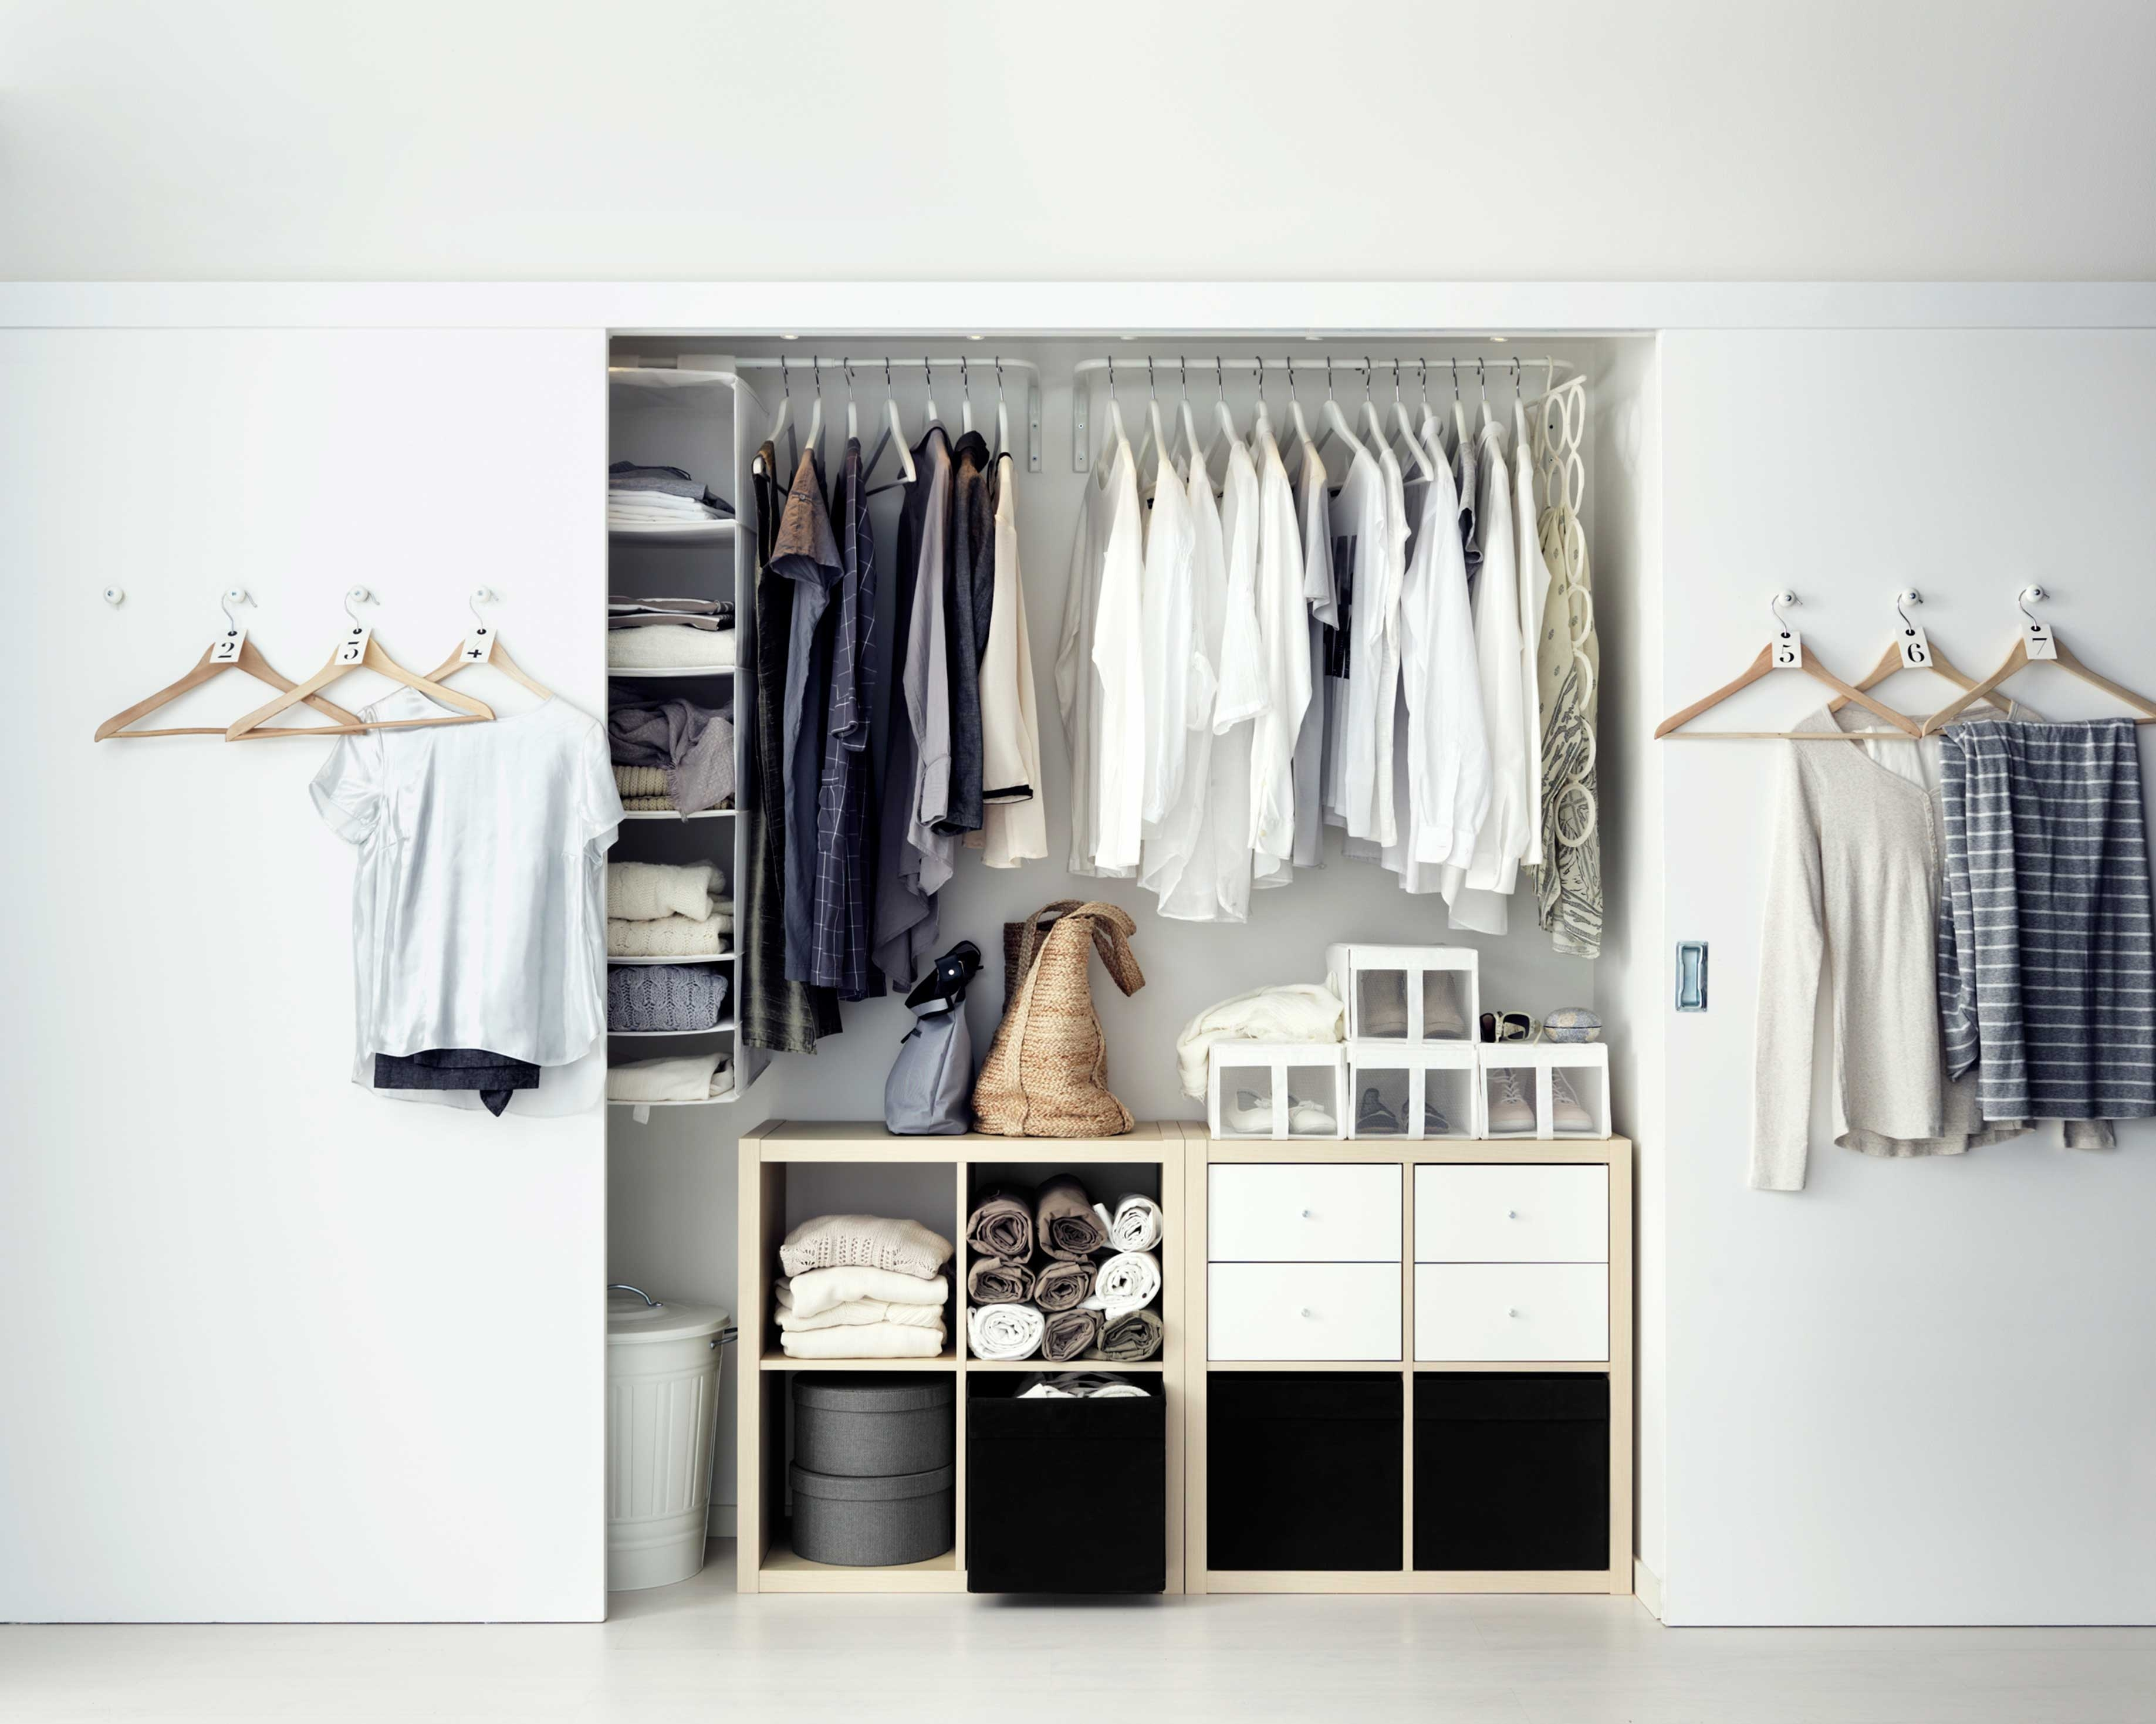 of way home a built to lovely best s storage design organize awesome ikea freestanding woman ideas small system in closet walk